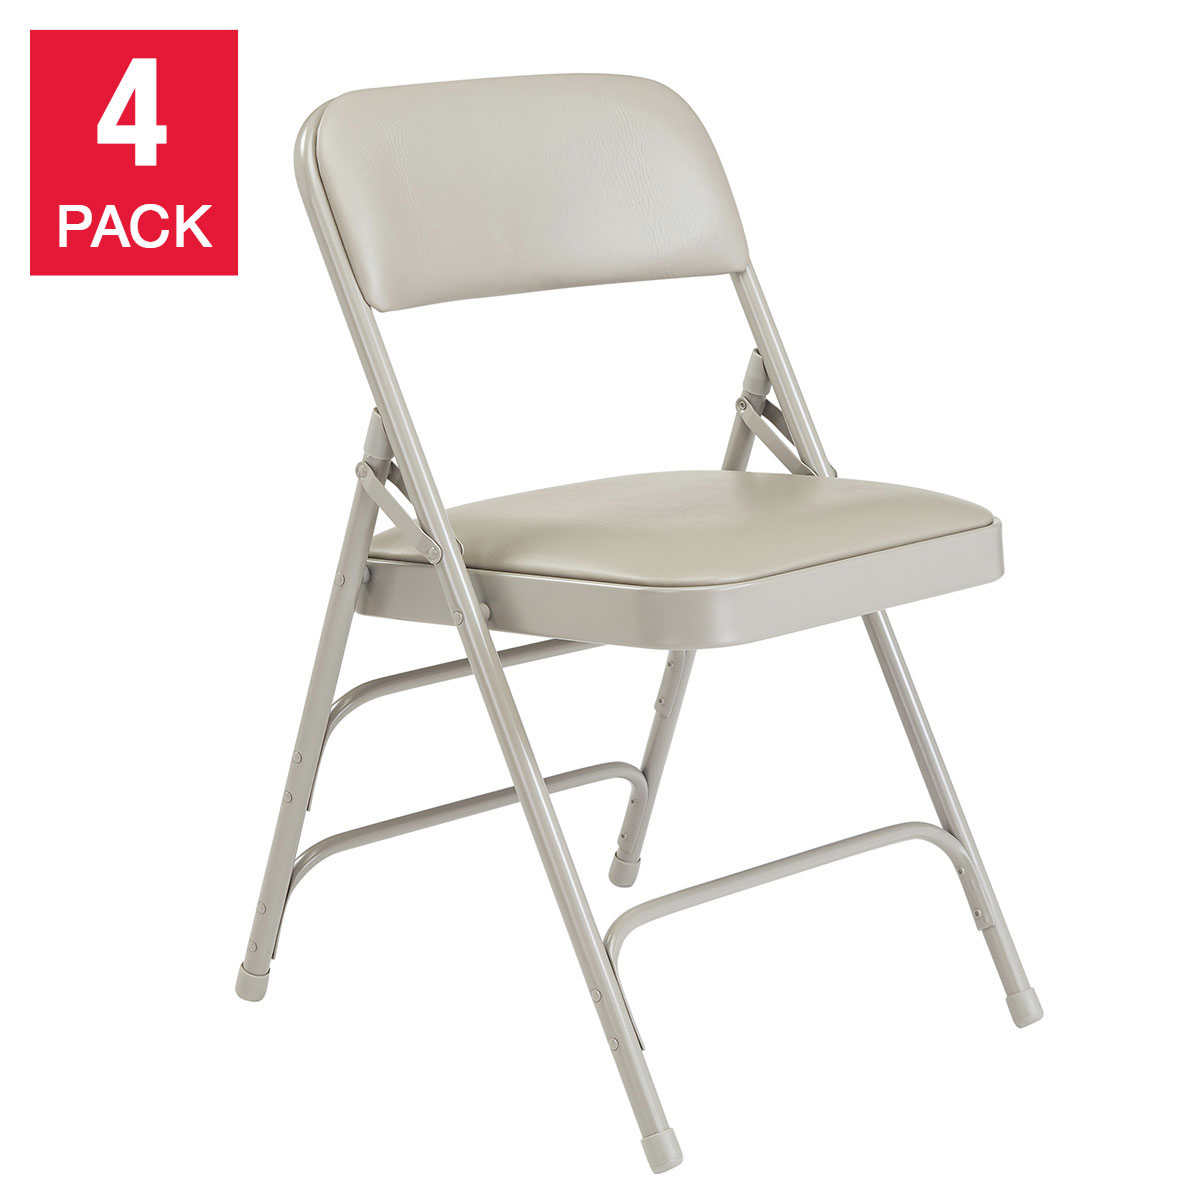 National Public Seating Vinyl Upholstered Folding Chairs 4 Pack